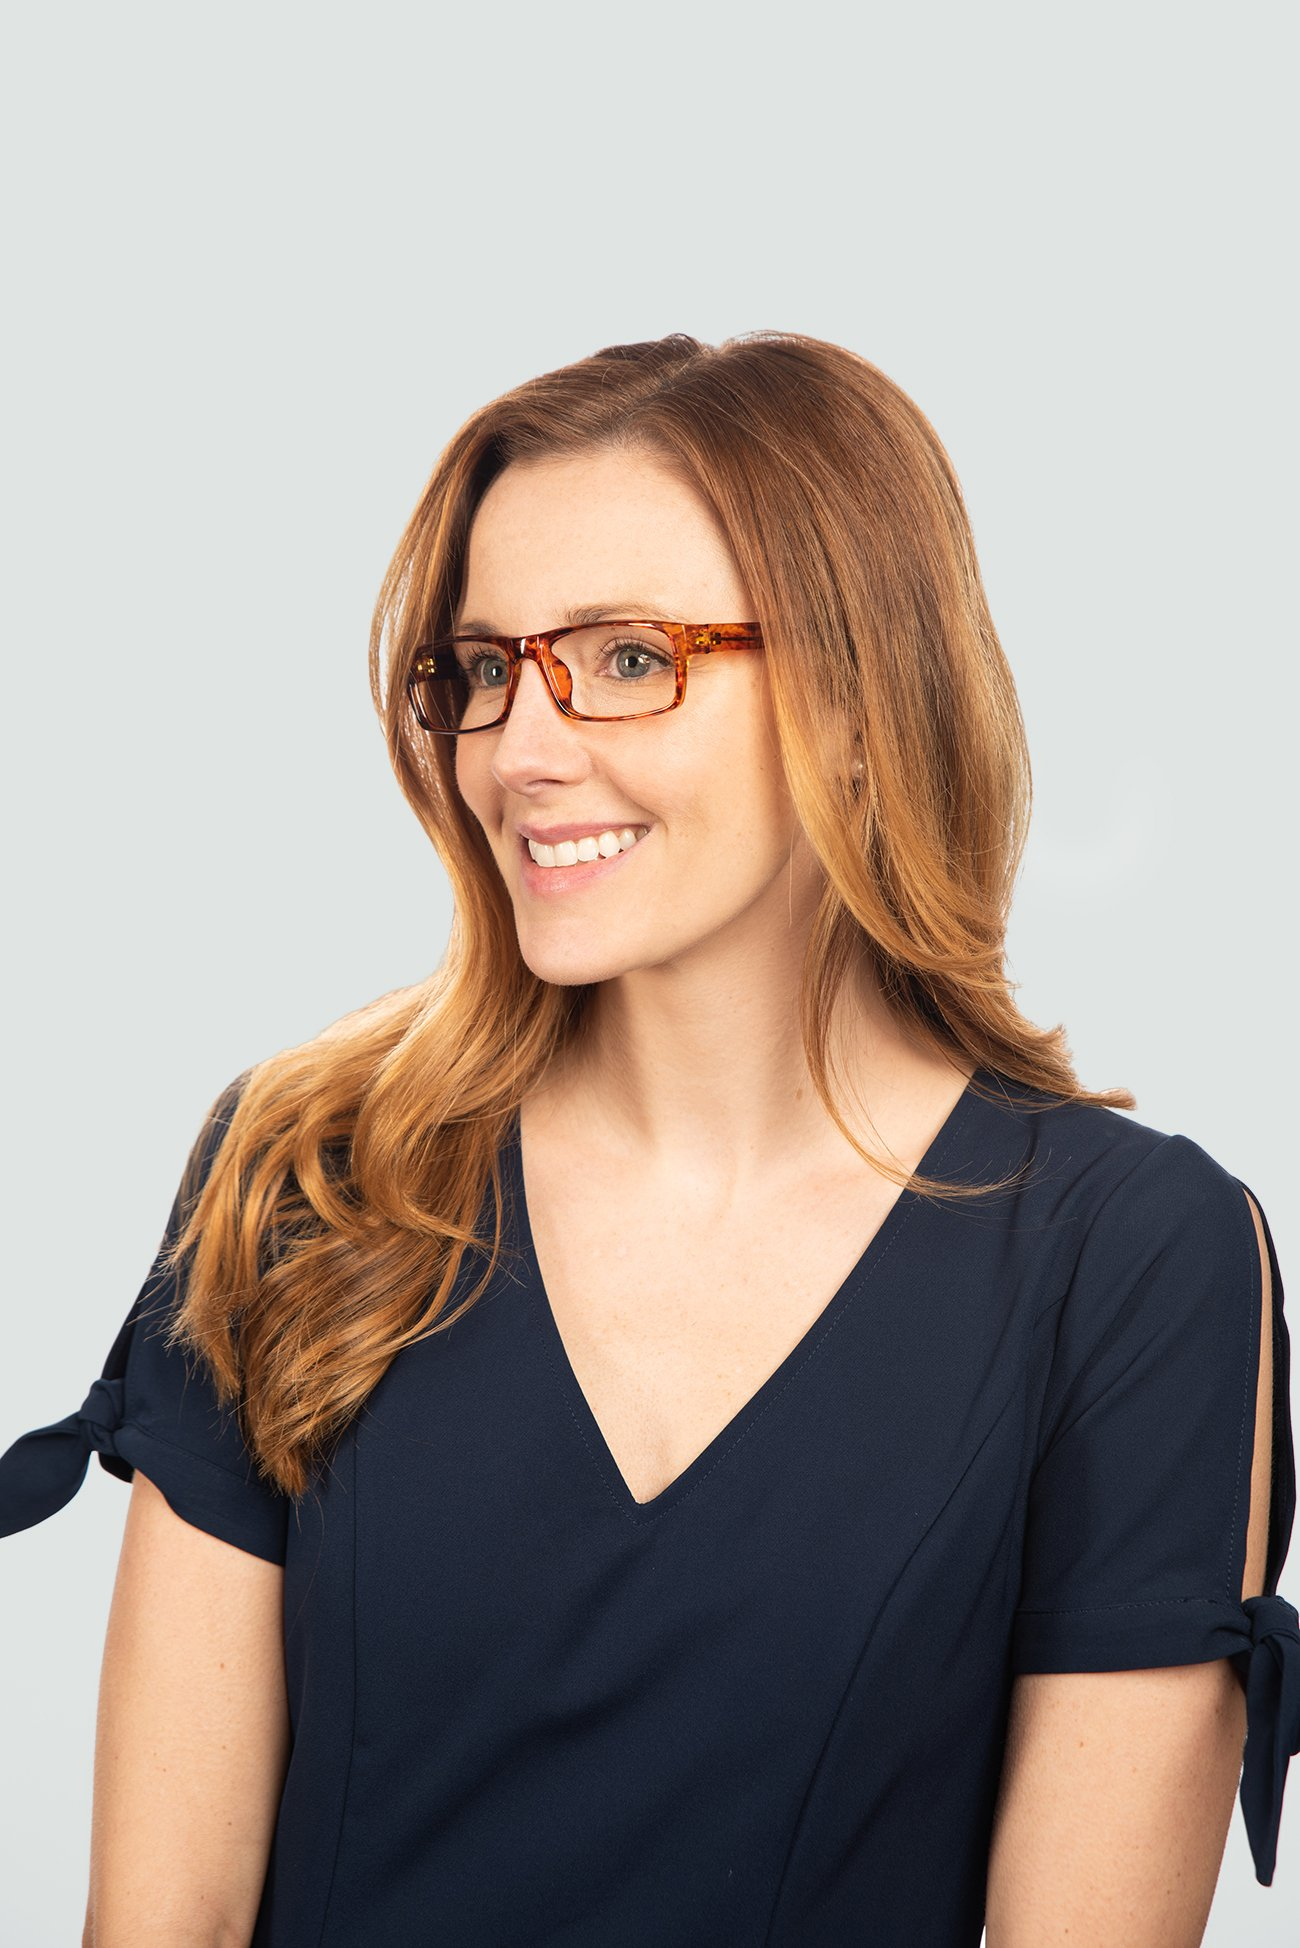 red head woman wearing plastic tortoise glasses